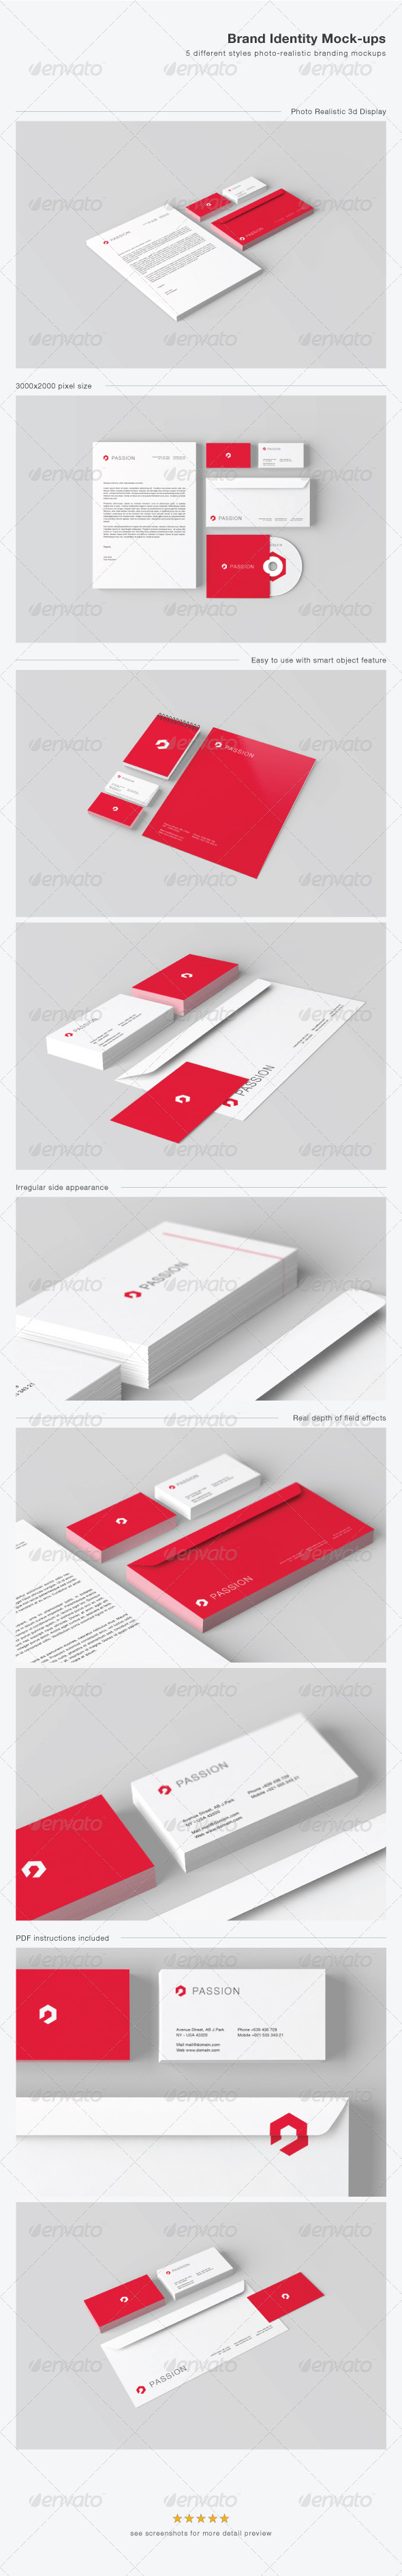 GraphicRiver Stationery Brand Identity Mock-ups 4356495